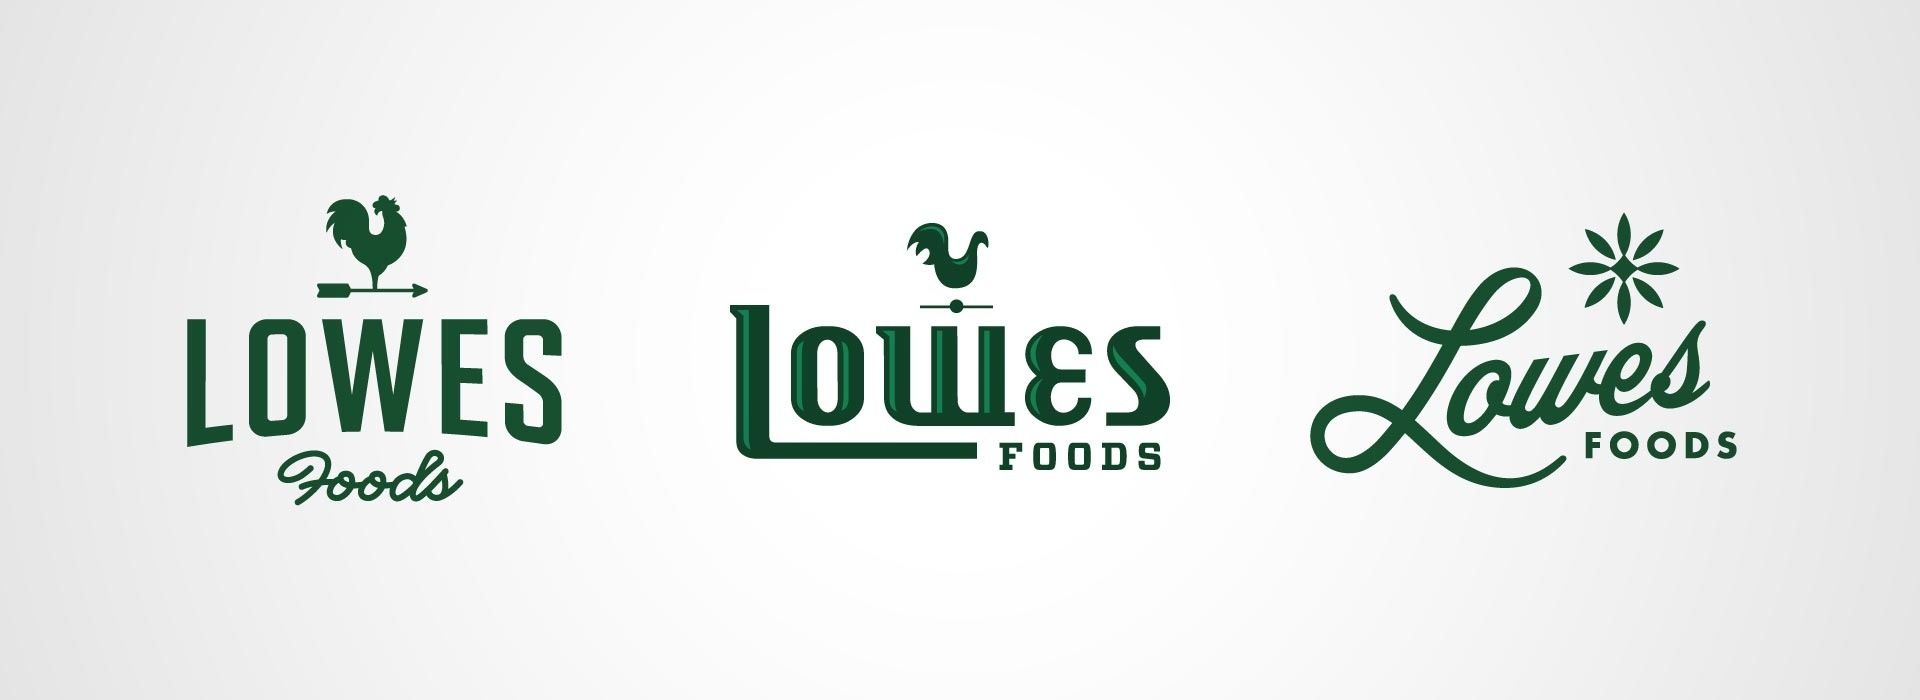 Lowes foods Logos.